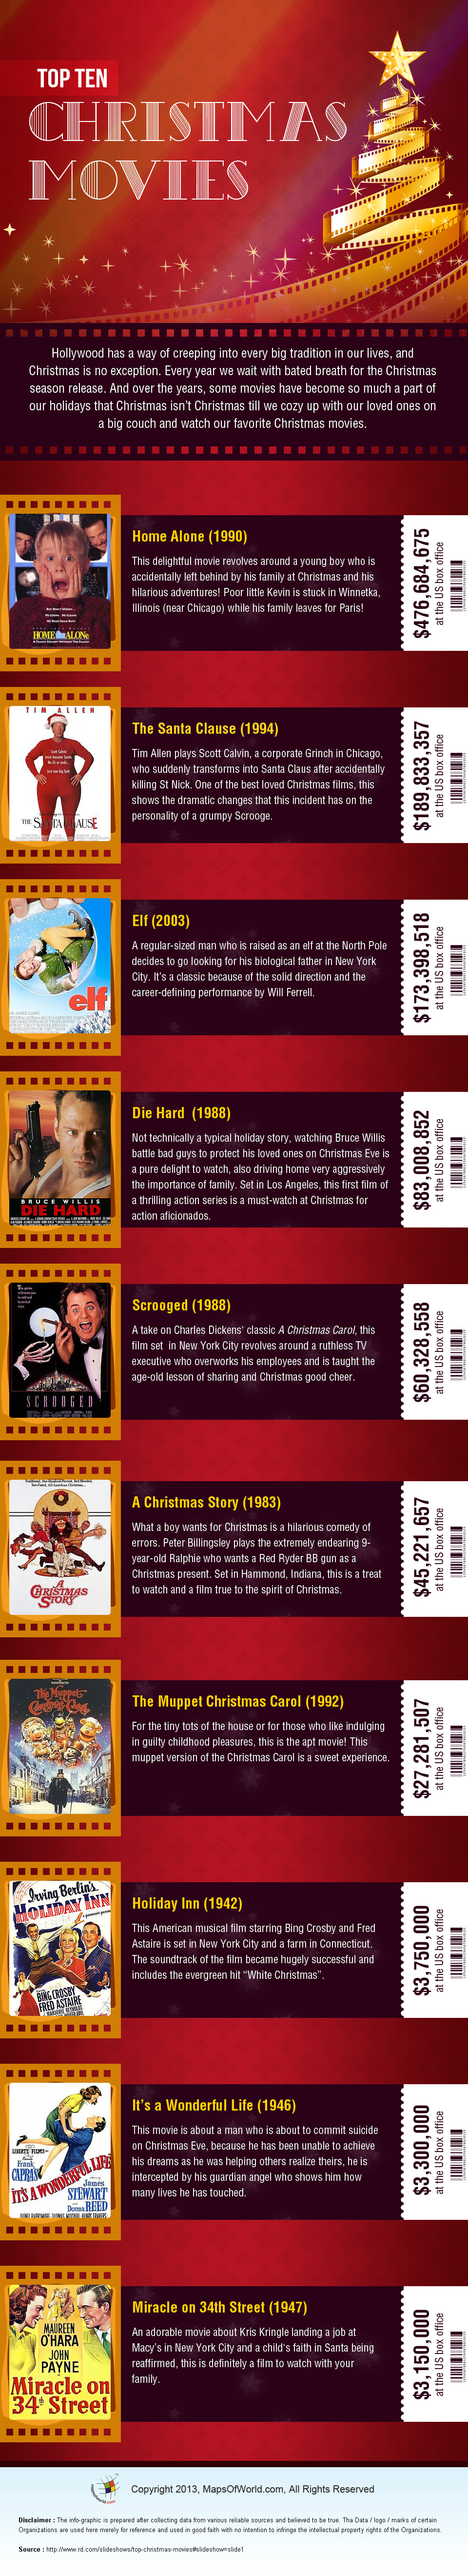 Infographic on Top 10 Christmas Movies